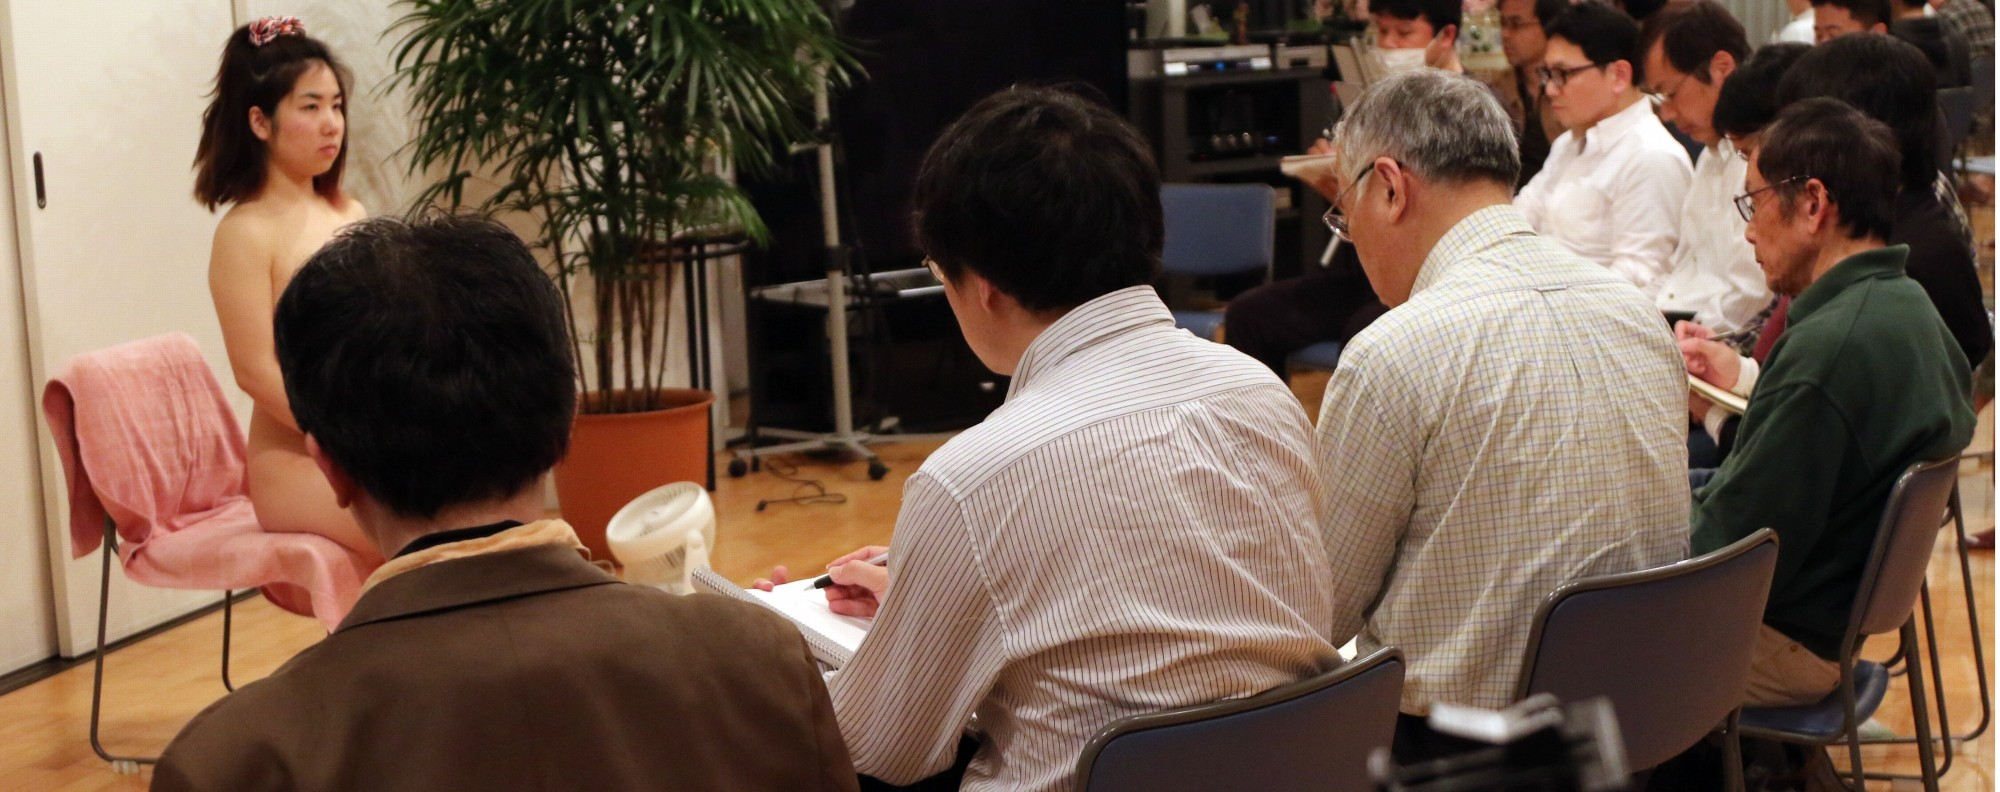 Middle aged Japanese men at a life drawing class. Photo: AFP